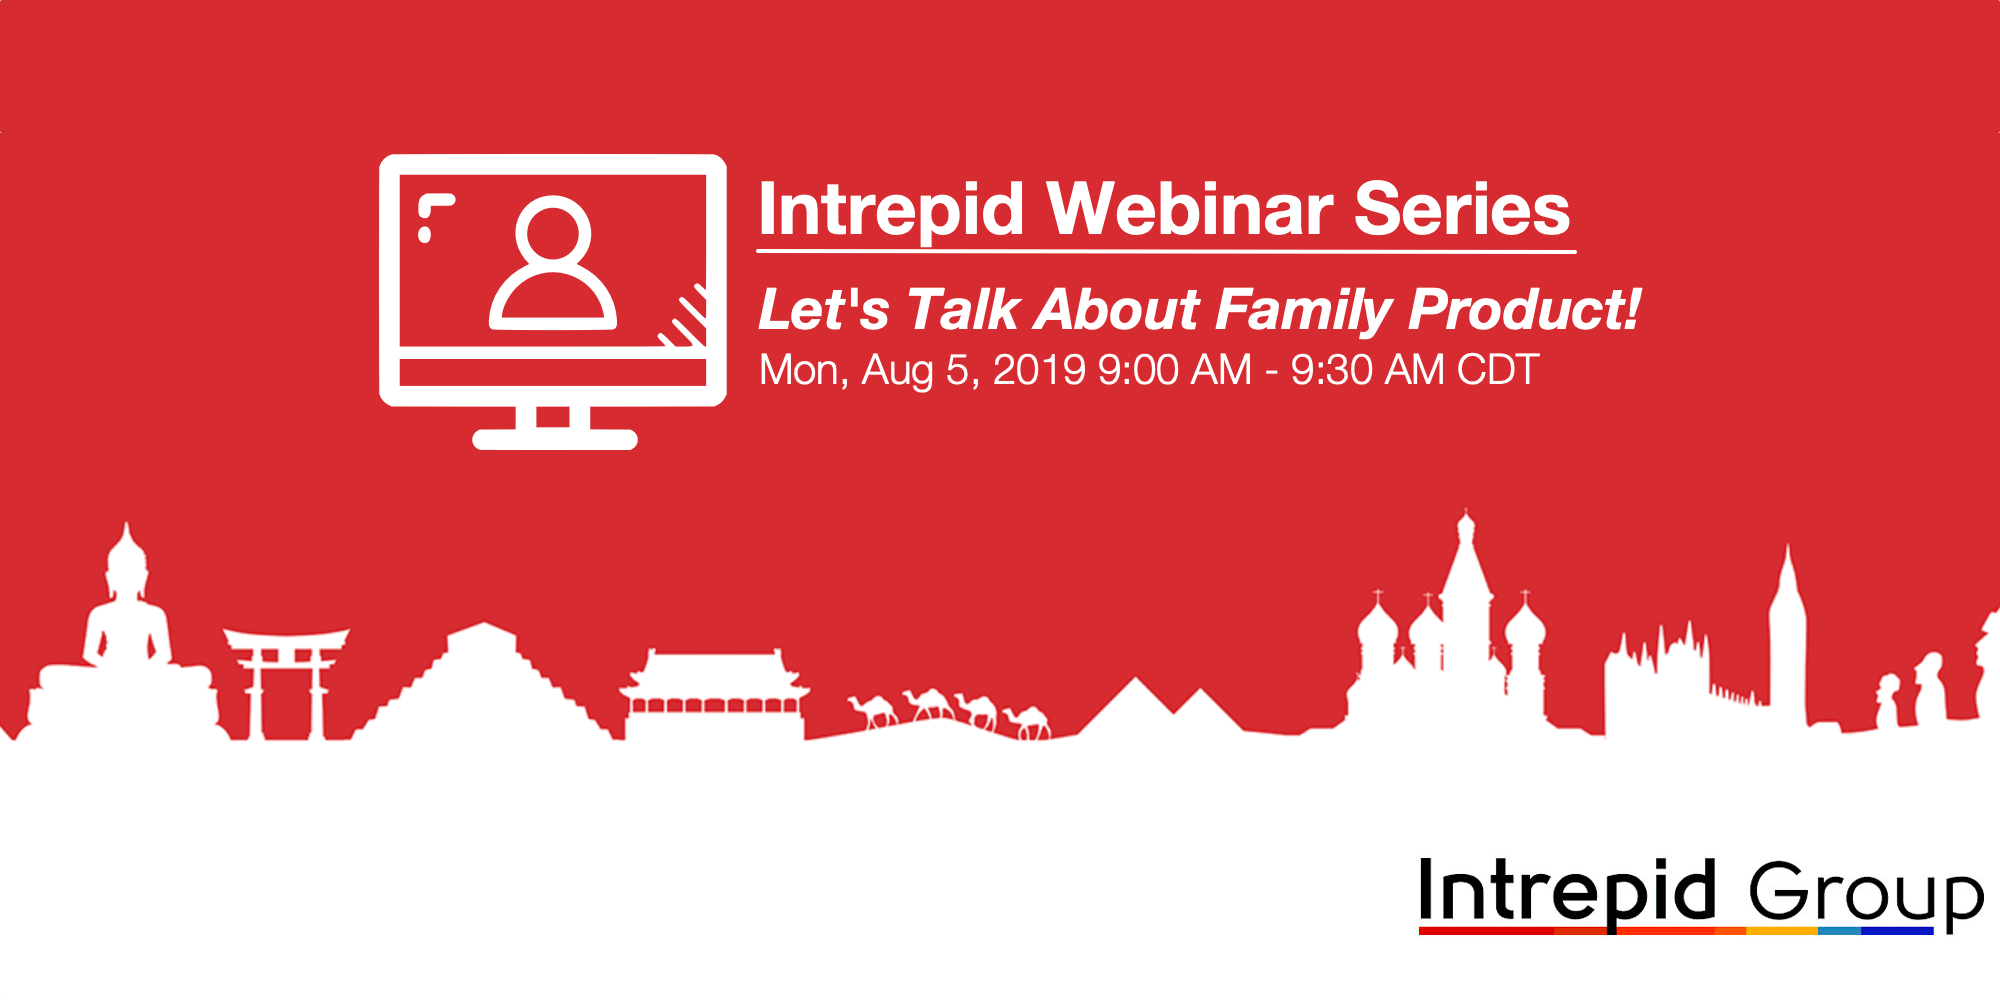 Let's Talk About Family Product!